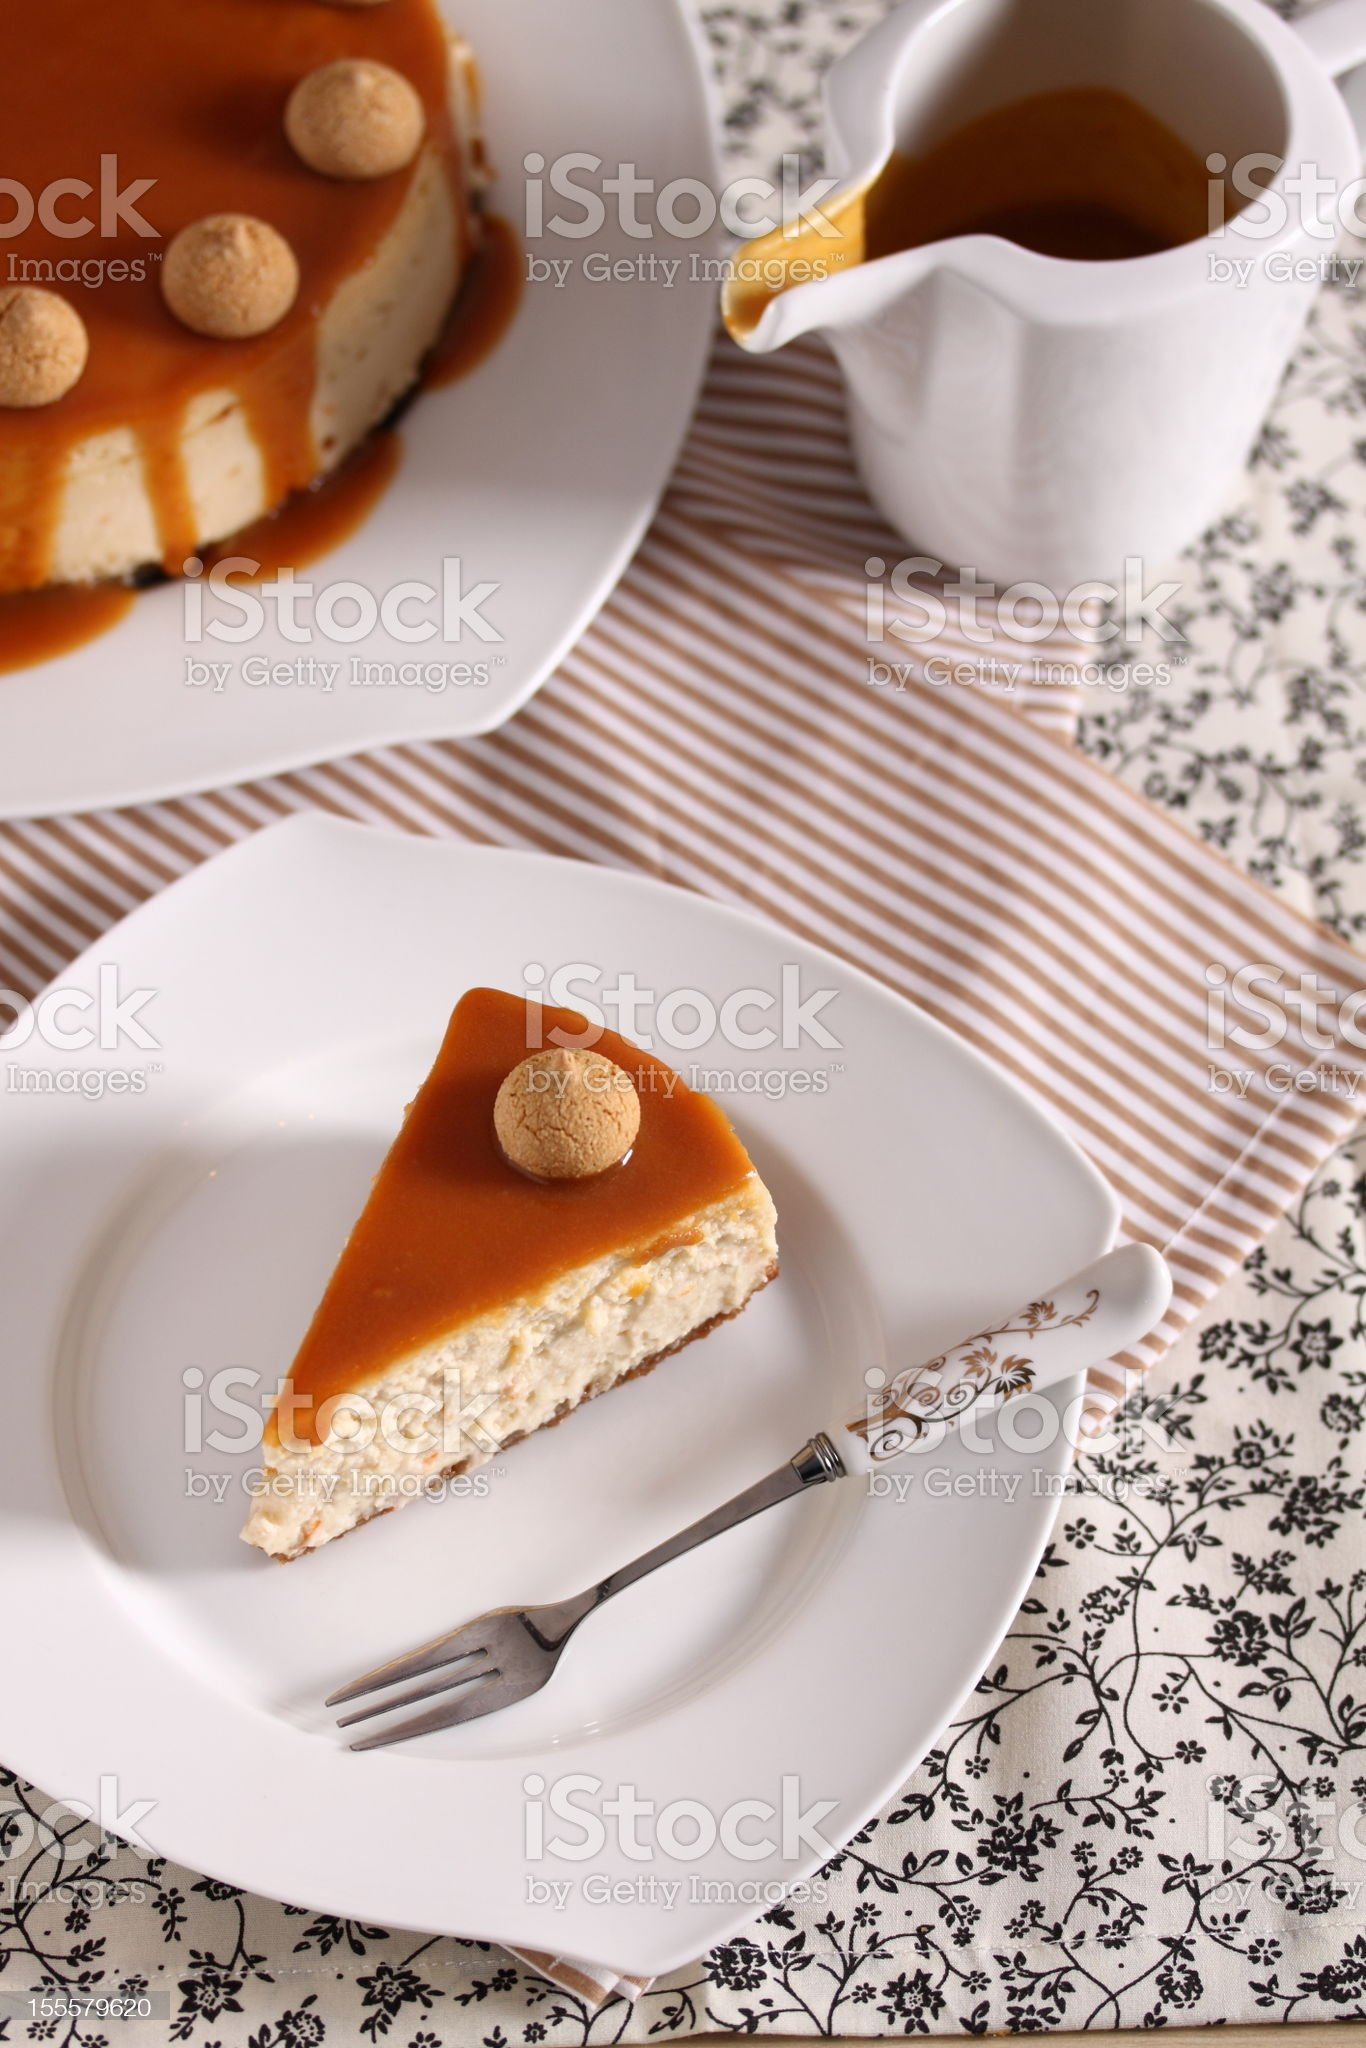 Cheesecake with caramel sauce royalty-free stock photo